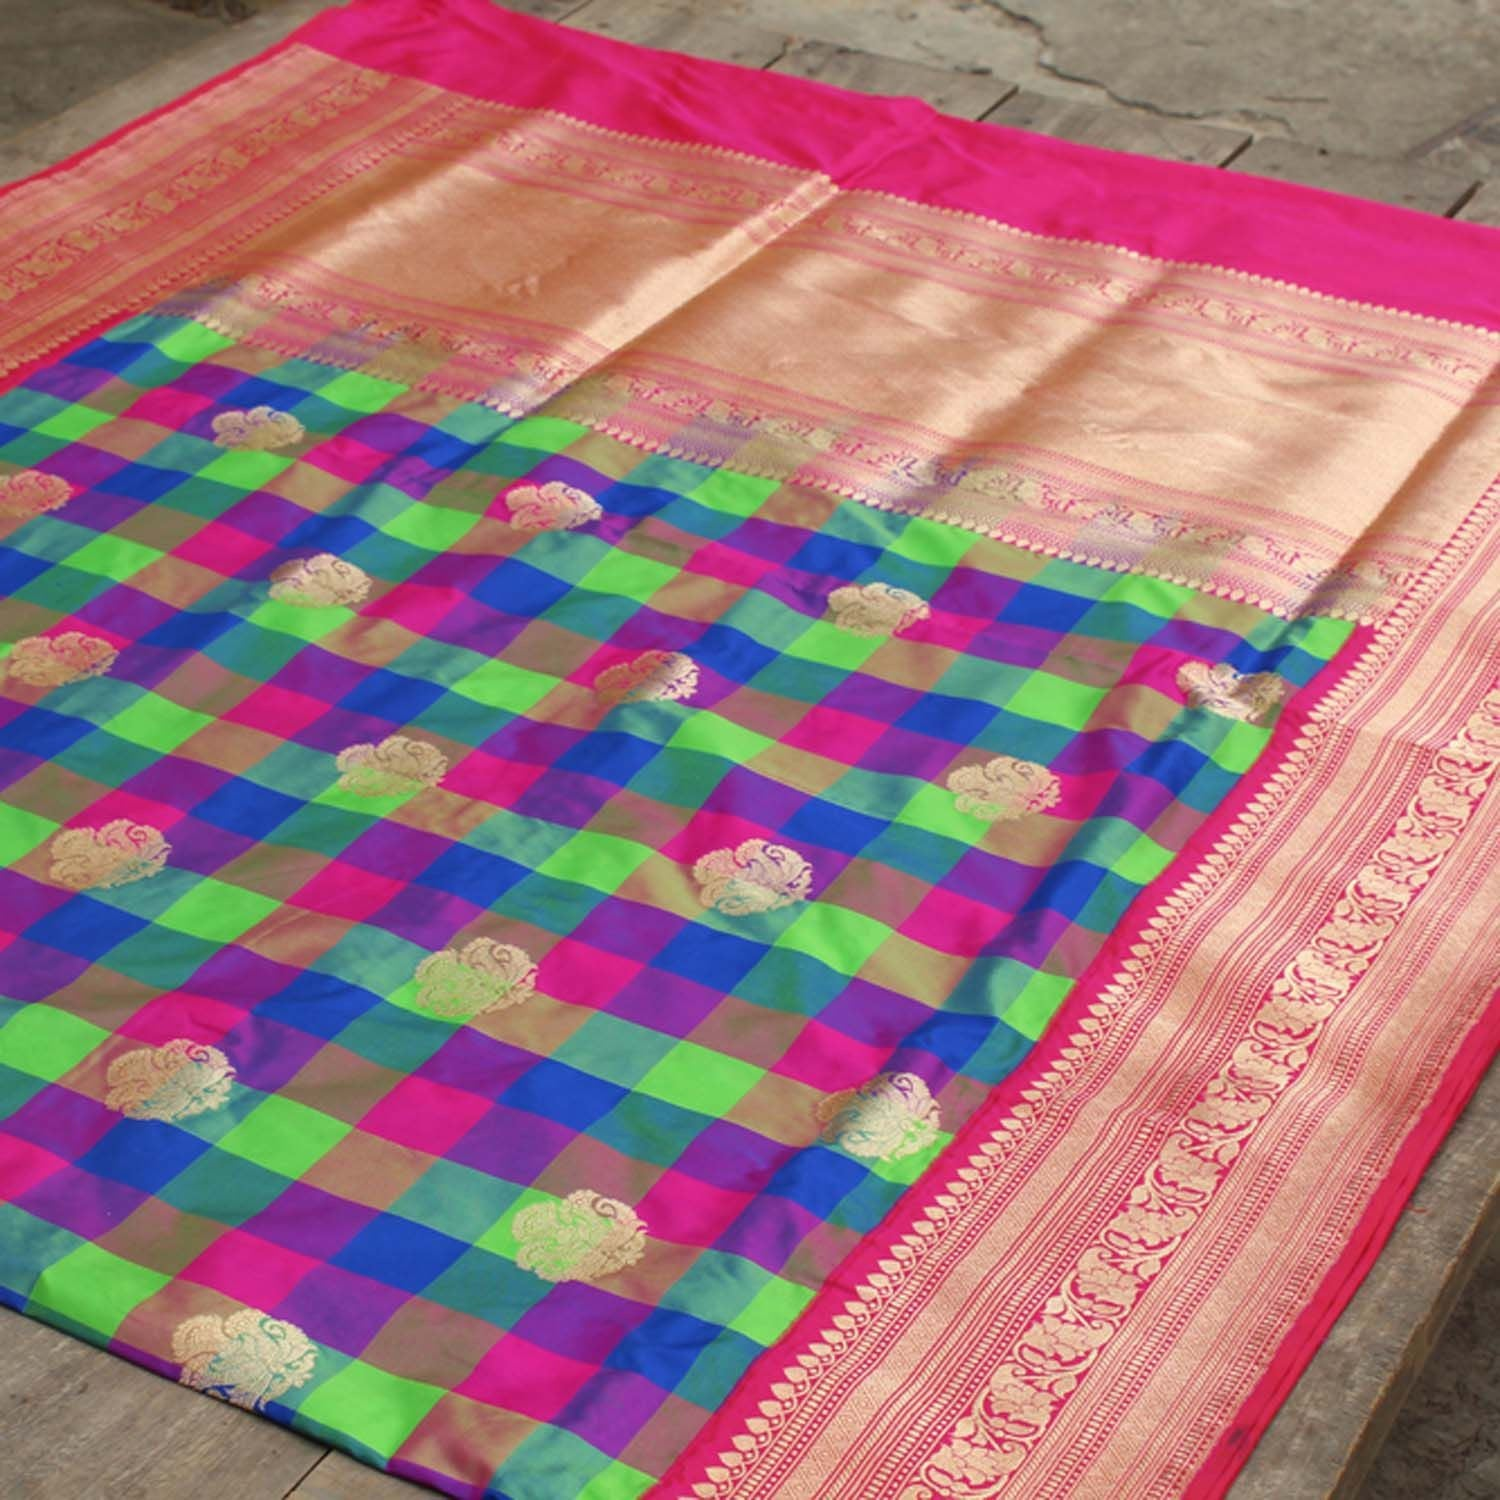 Checkered Pure Katan Silk Handloom Banarasi Saree - Tilfi - 2